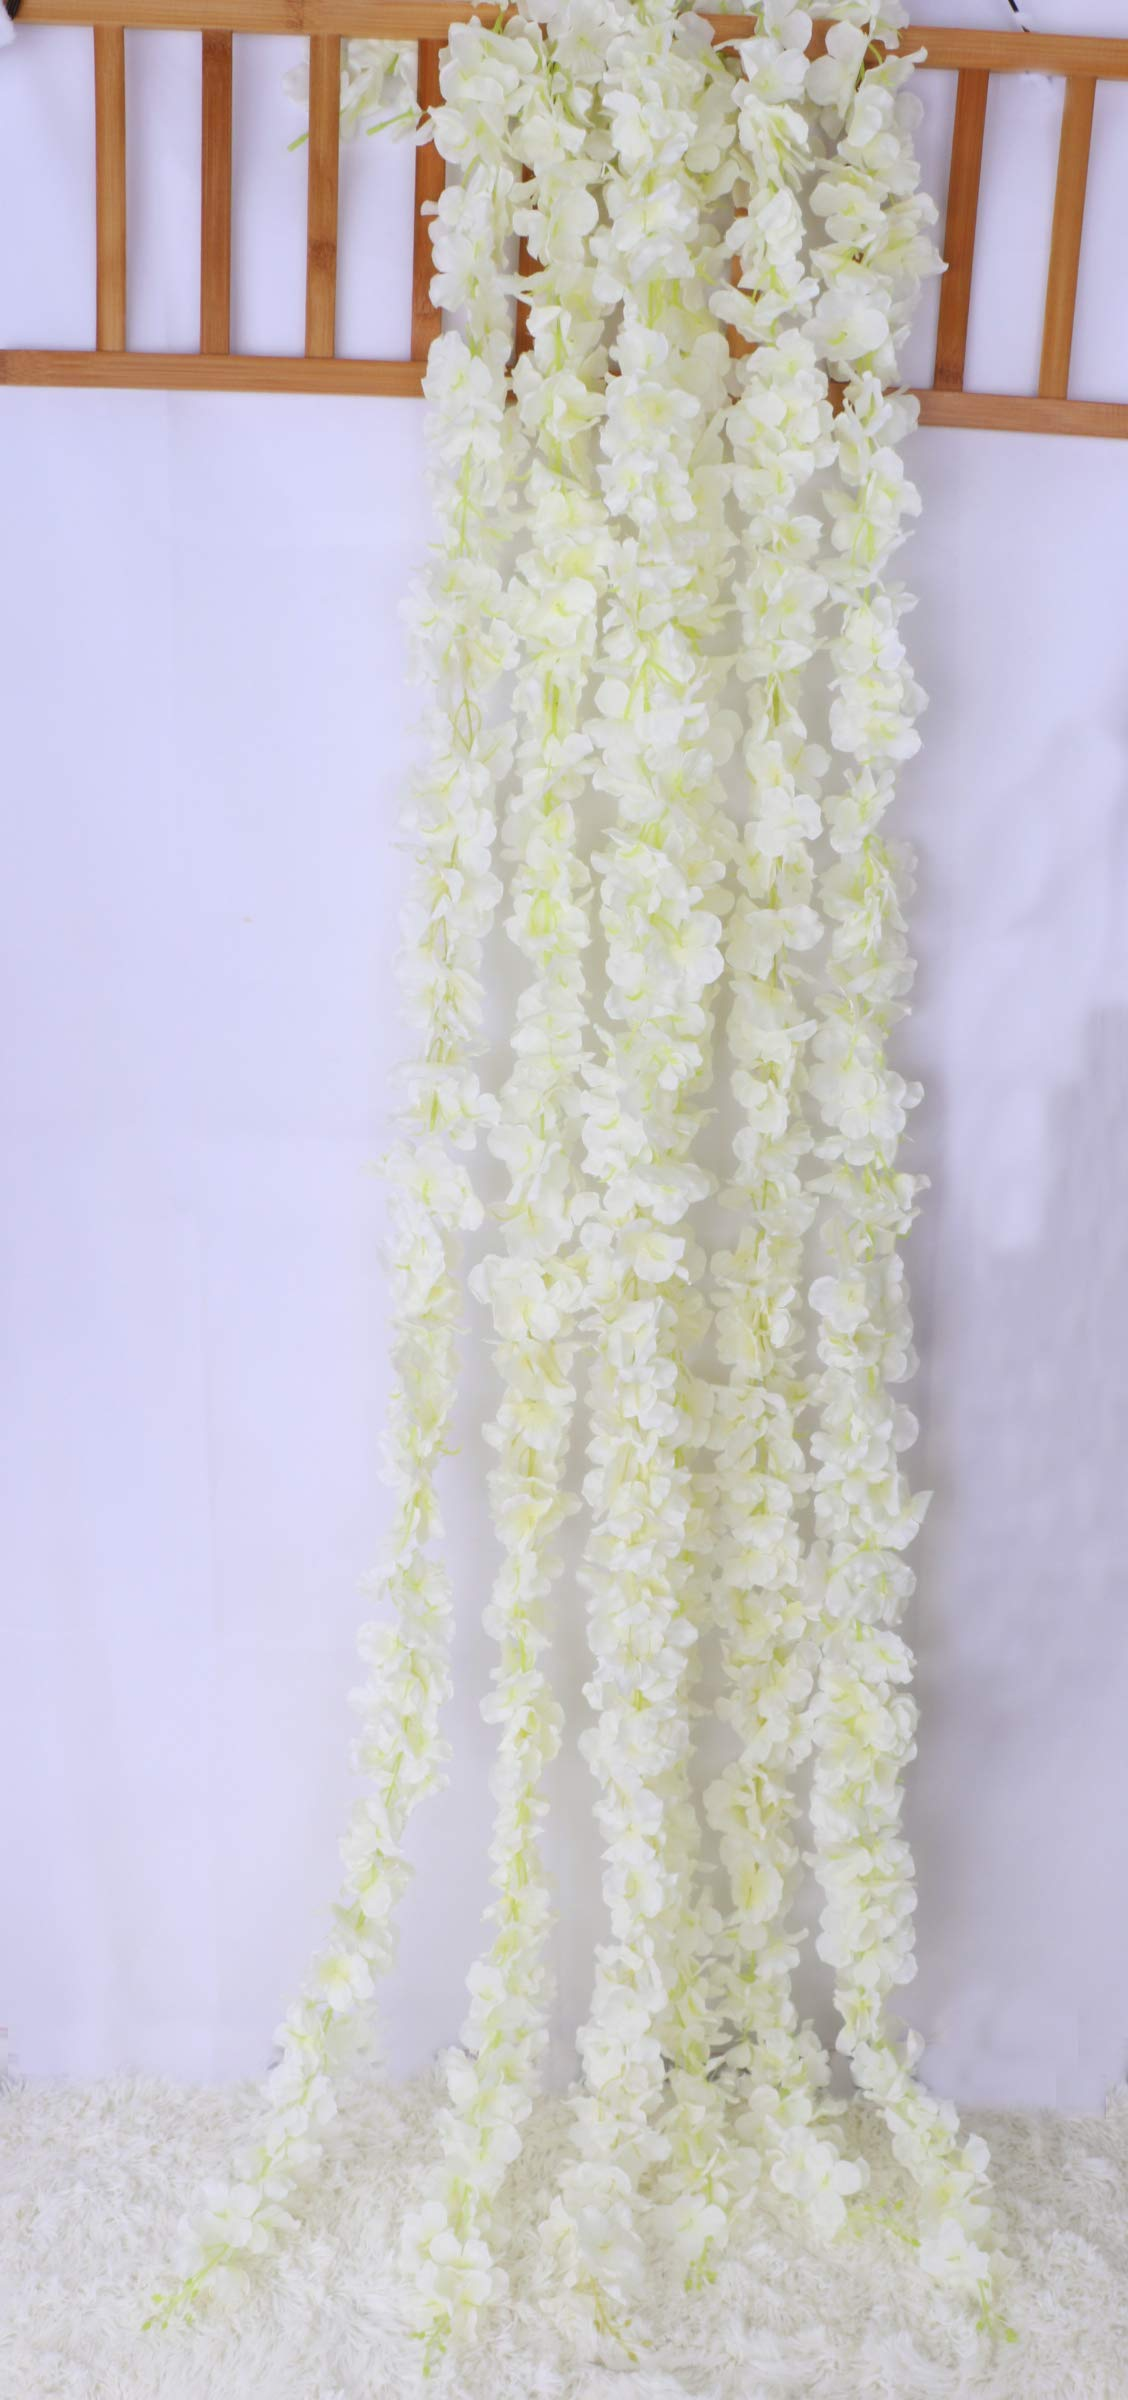 Lannu-5-Pack-13-FT-Artificial-Hydrangea-Flower-Vine-Wisteria-Garland-Vines-Cattleya-Flowers-Plants-for-Home-Wedding-Party-Decor-Cream